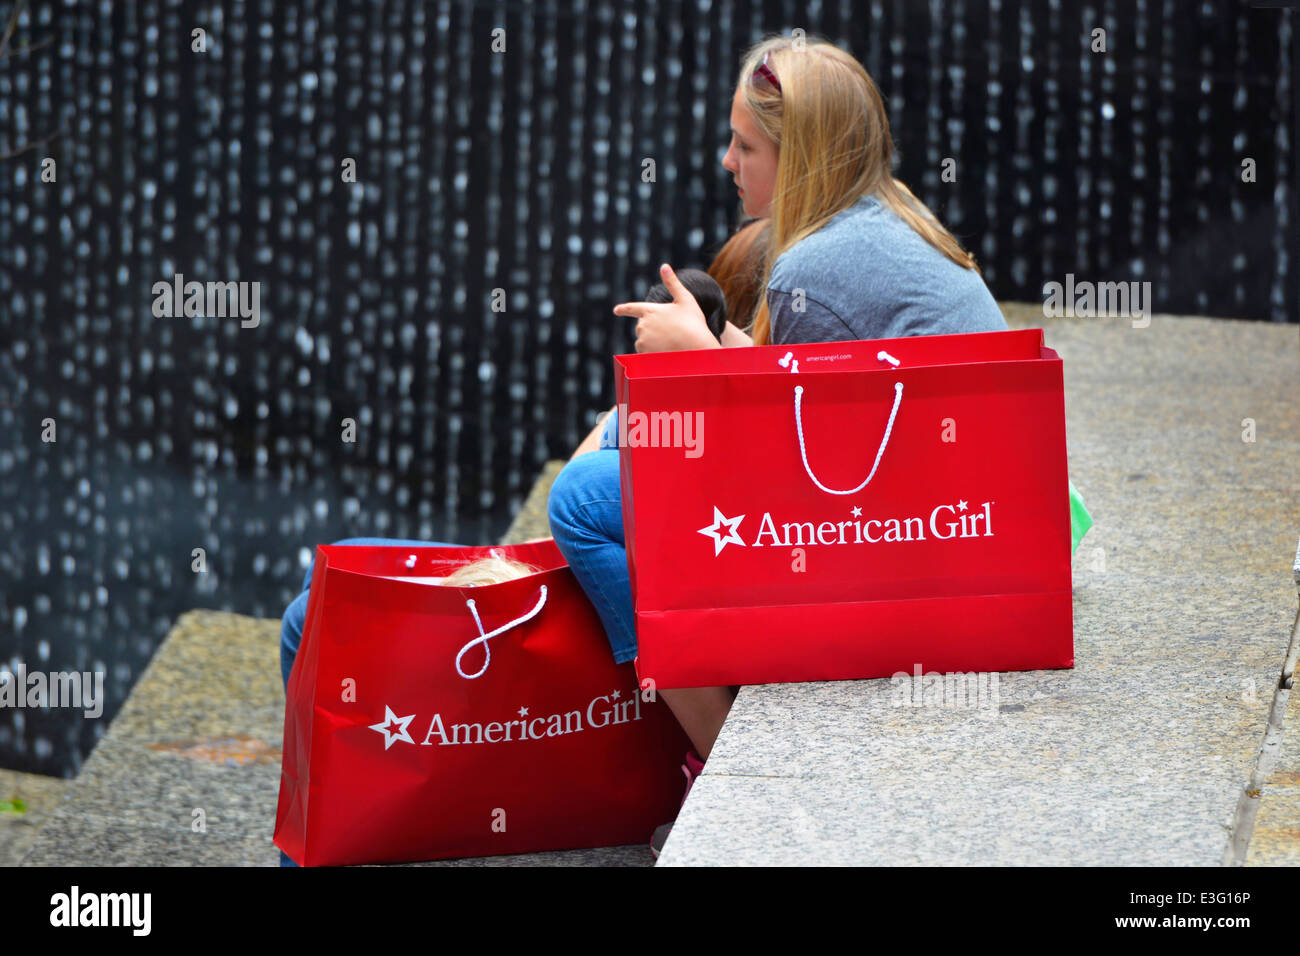 Girl sitting with American Girl Shopping Bags holding Doll, Chicago - Stock Image